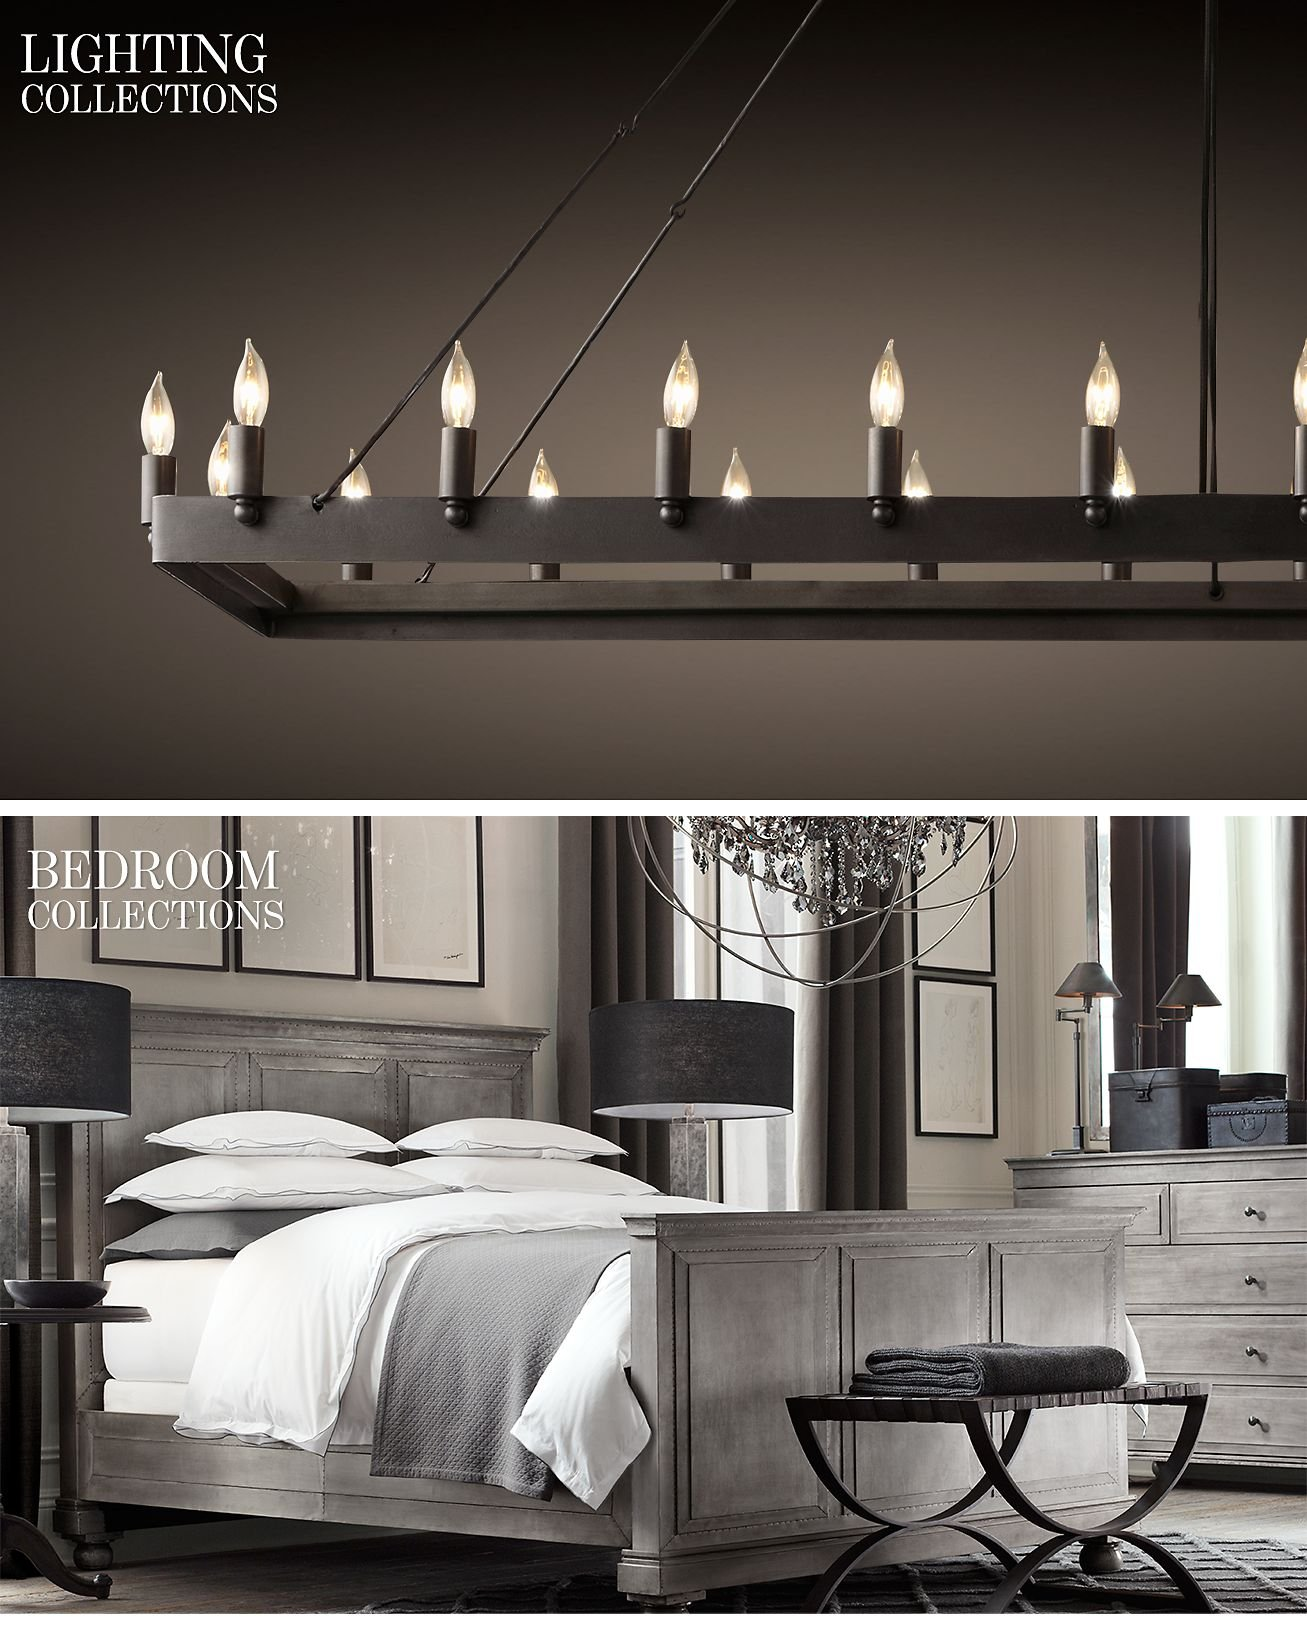 Restoration Hardware Coupon Codes, Promos & Sales. Visit Restoration Hardware's homepage to view the latest coupon codes, promotions, and sales.